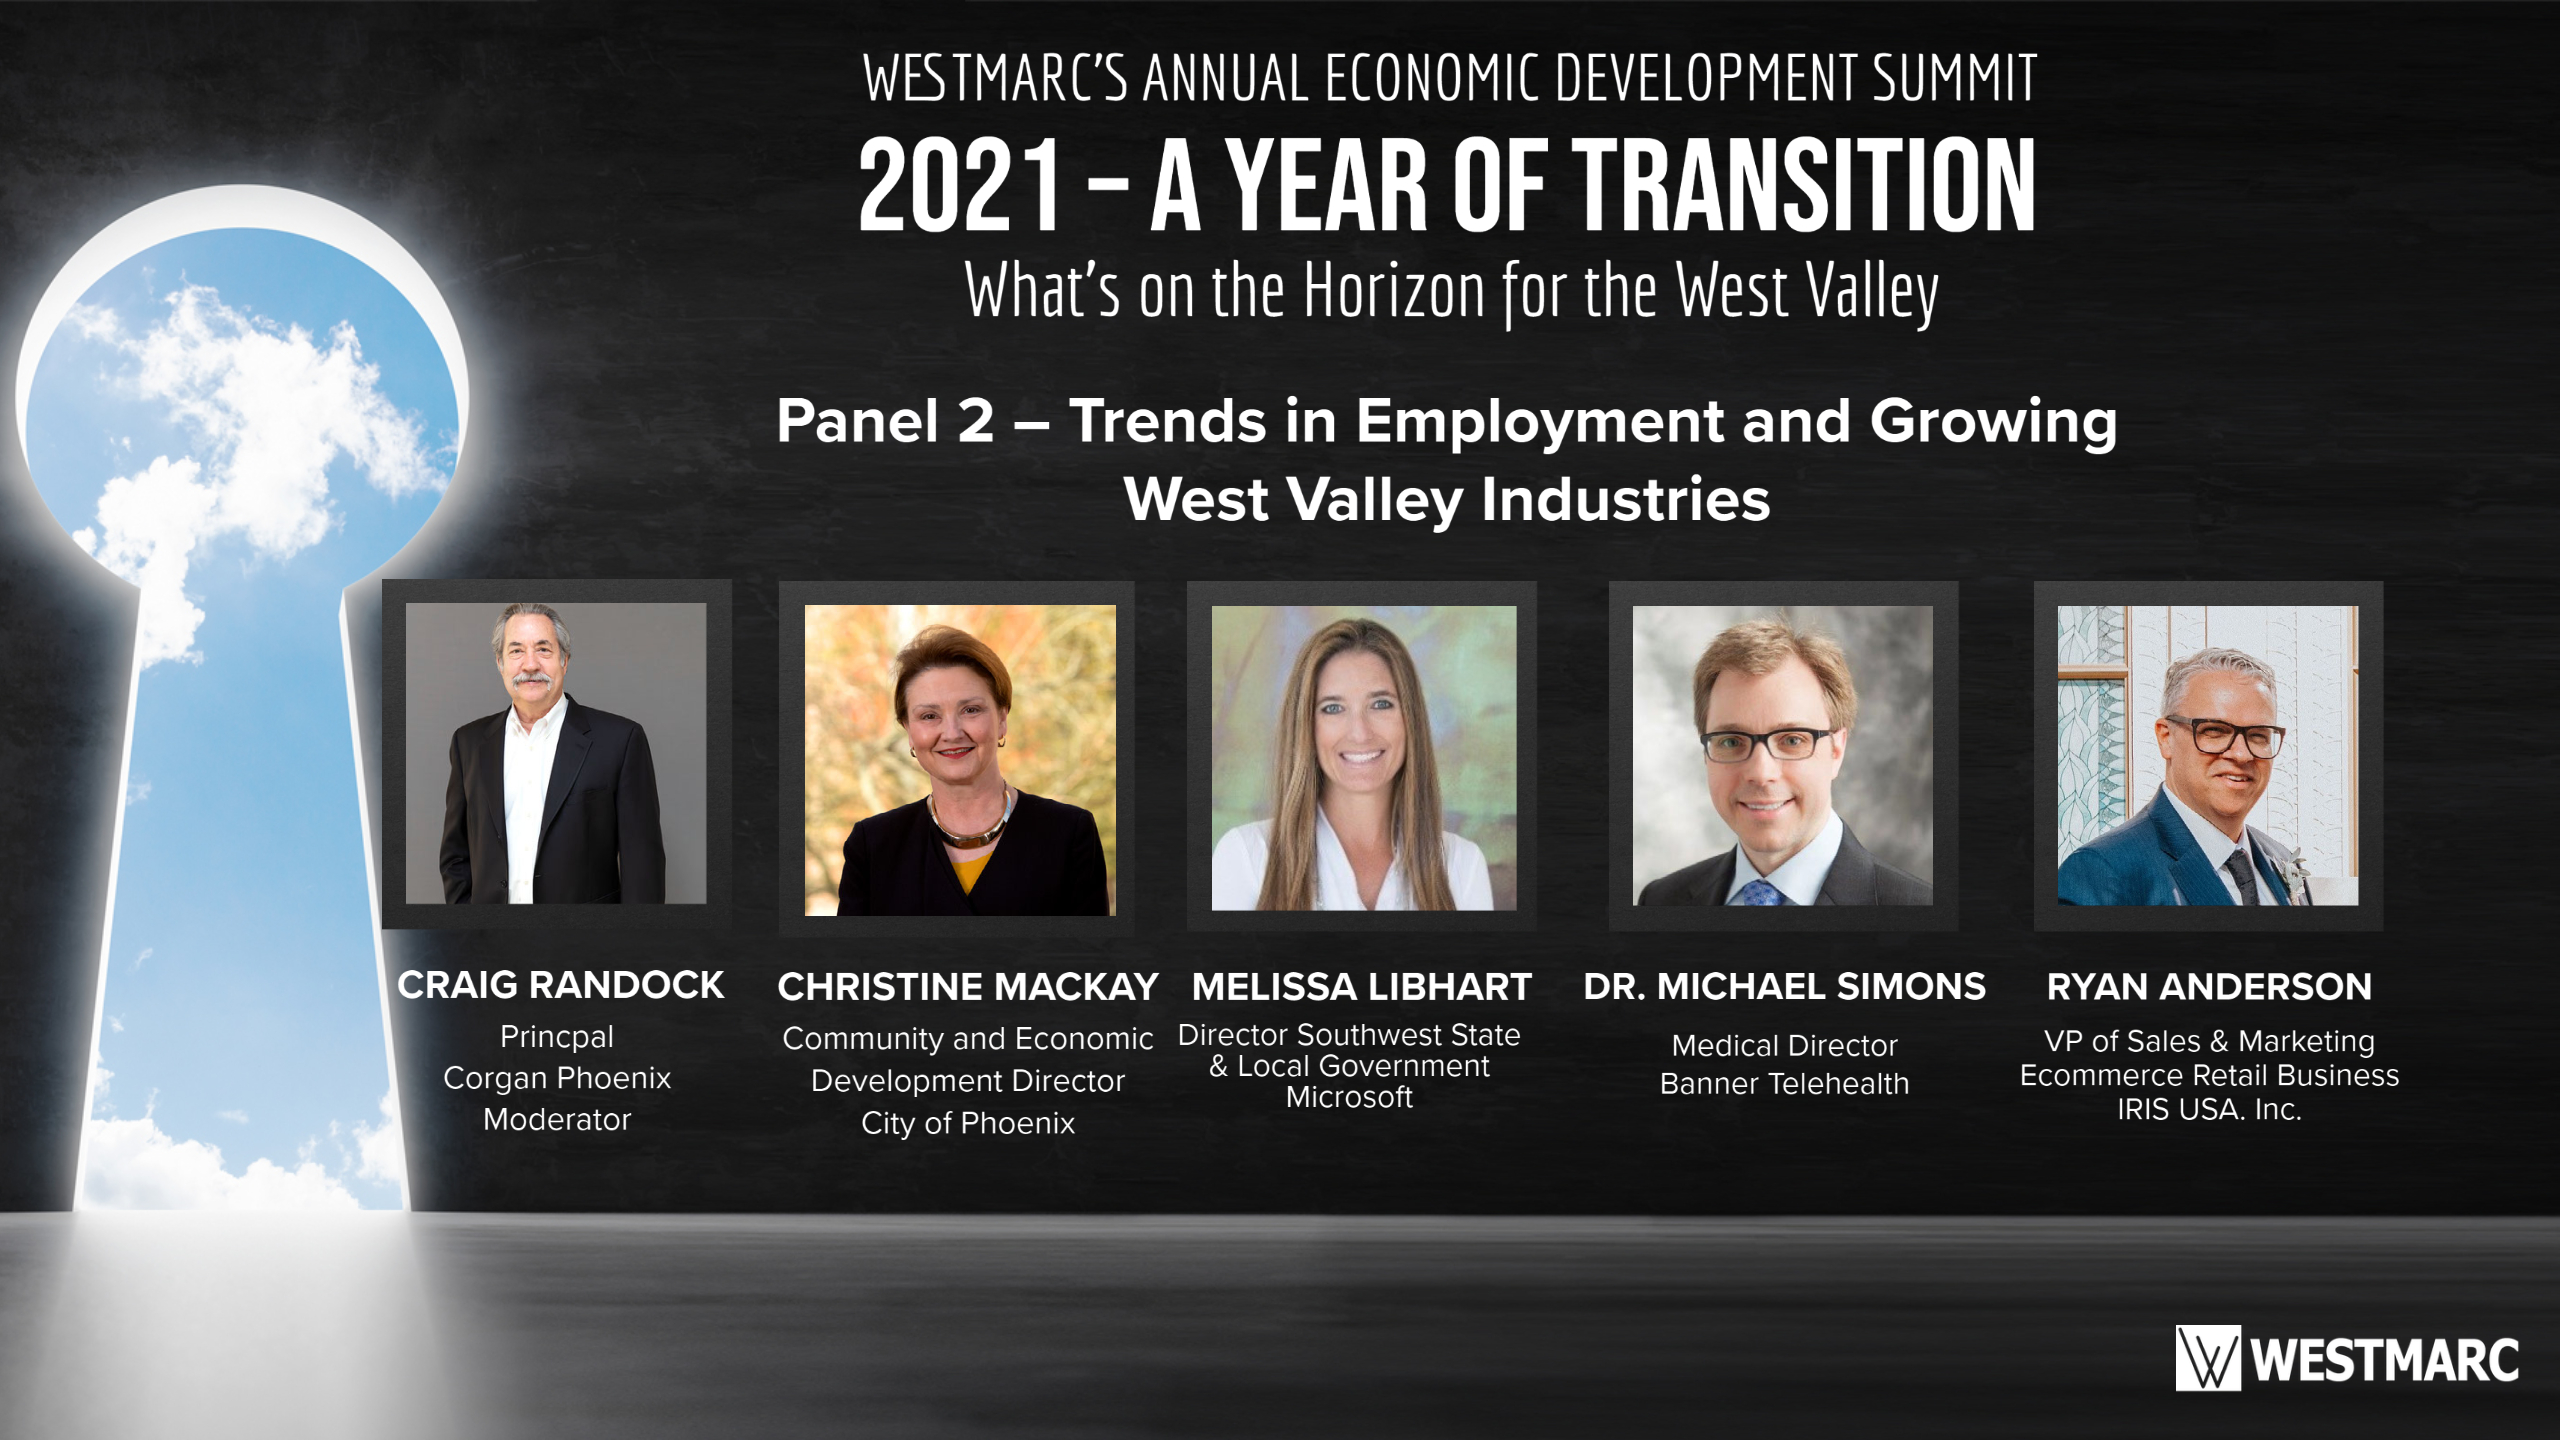 Panel 2 - Trends in Employment and Growing West Valley Industries